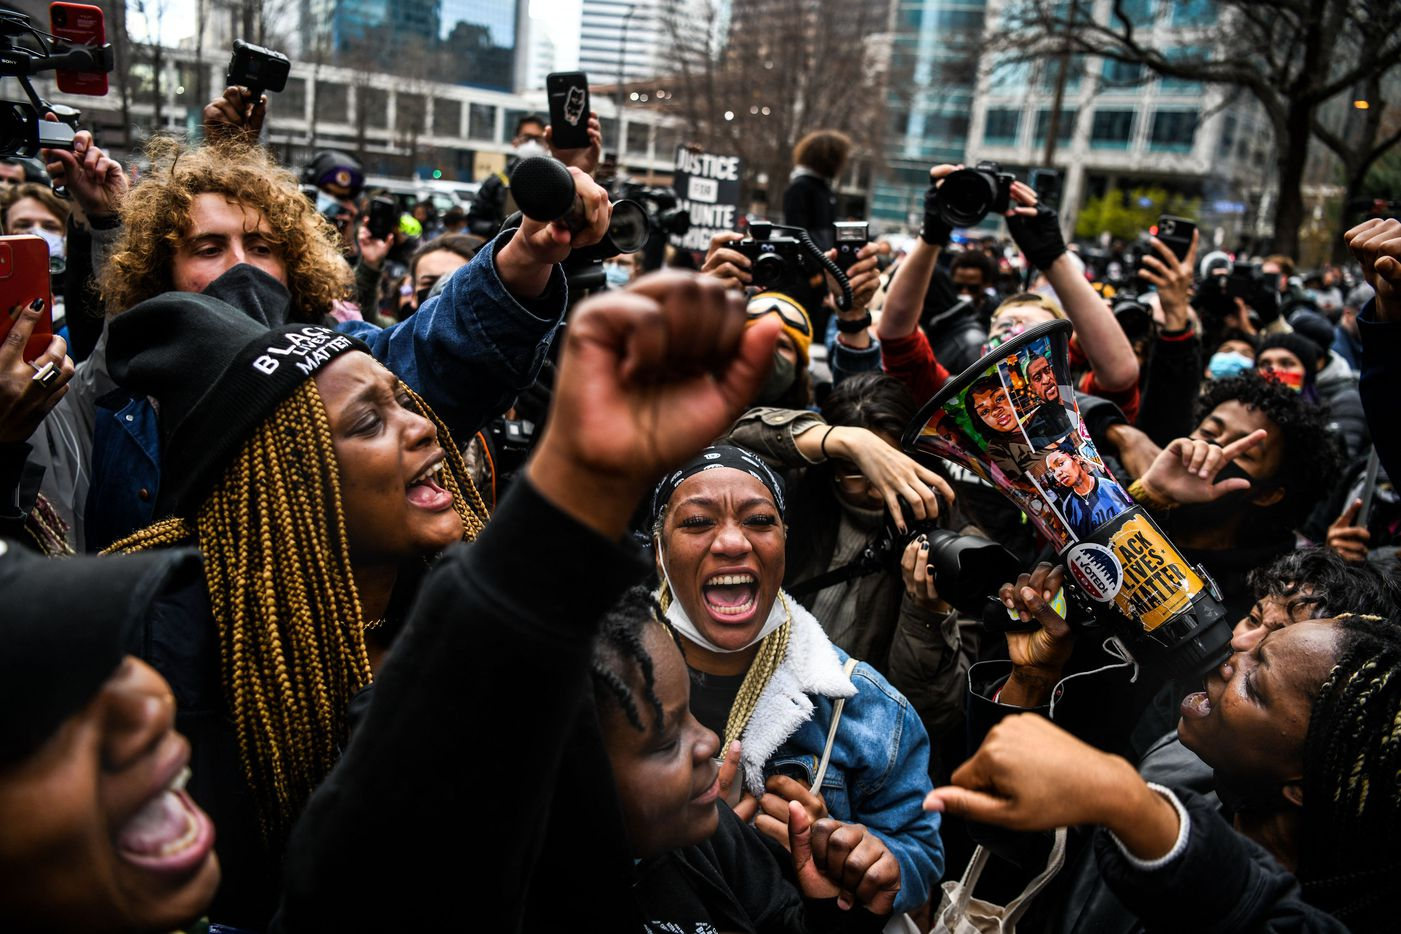 People celebrate as the verdict is announced in the trial of former police officer Derek Chauvin outside the Hennepin County Government Center in Minneapolis, Minnesota on April 20, 2021. - Sacked police officer Derek Chauvin was convicted of murder and manslaughter on april 20 in the death of African-American George Floyd in a case that roiled the United States for almost a year, laying bare deep racial divisions.